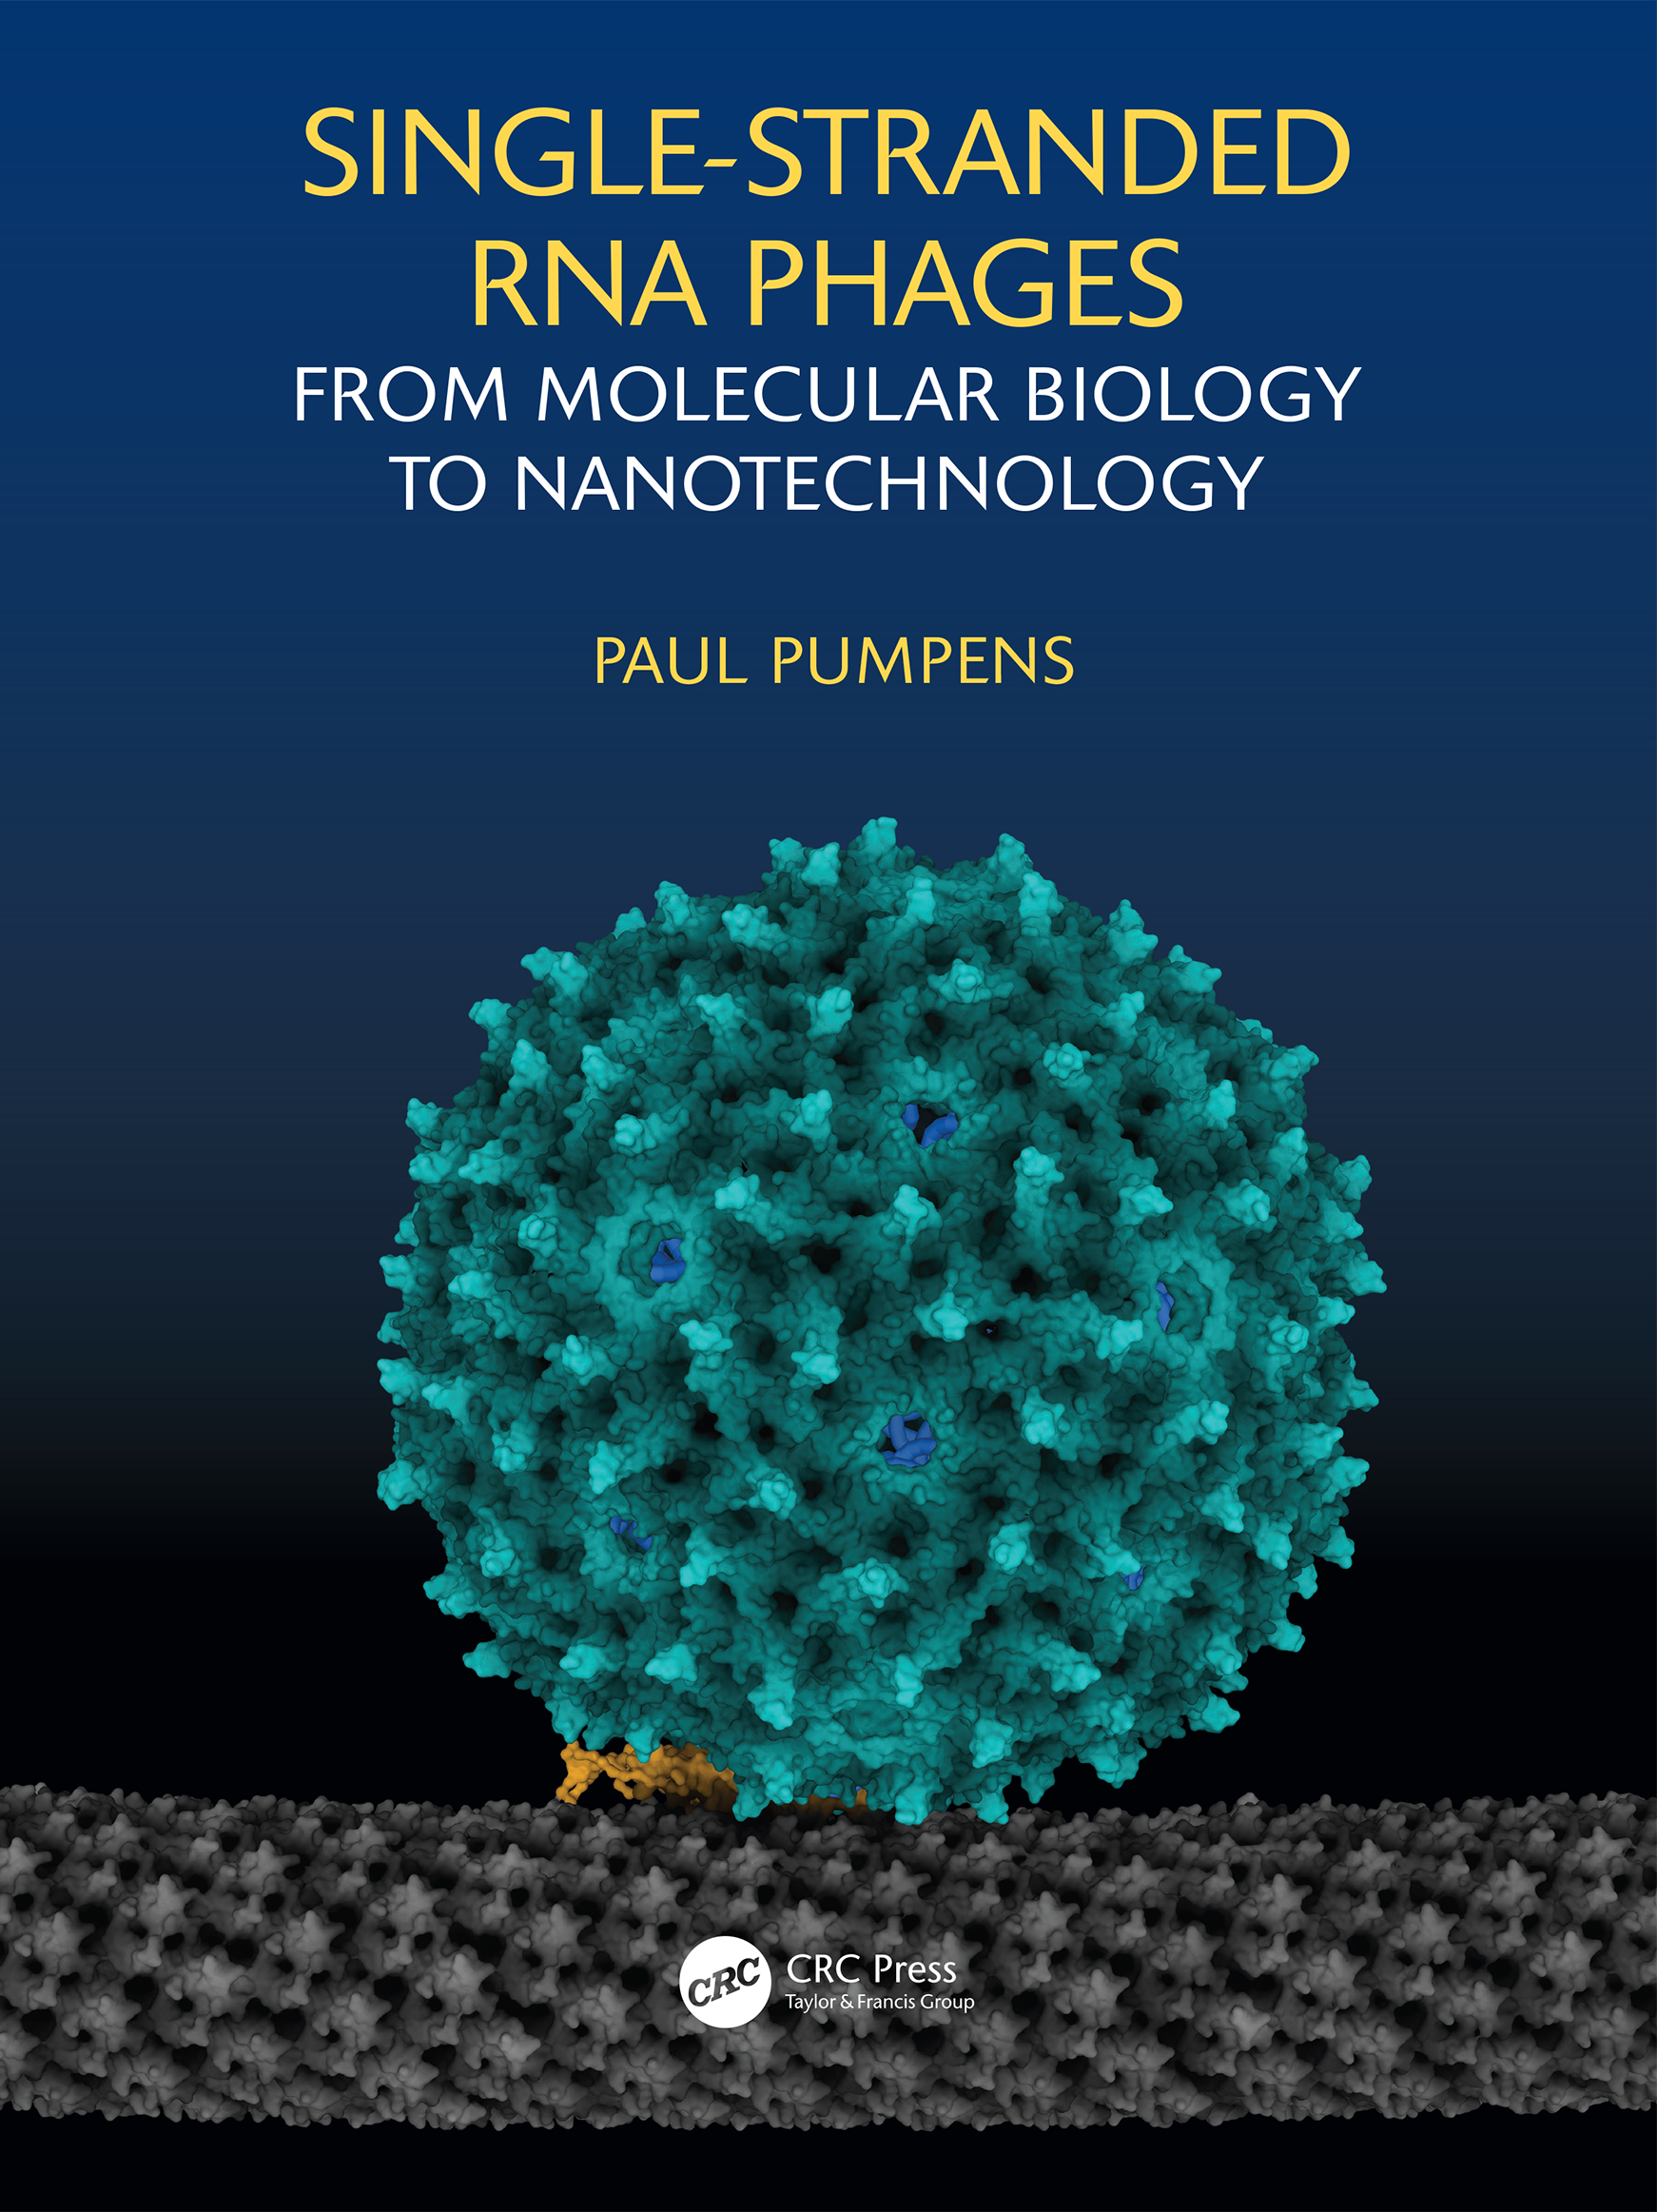 Single-stranded RNA phages: From molecular biology to nanotechnology book cover